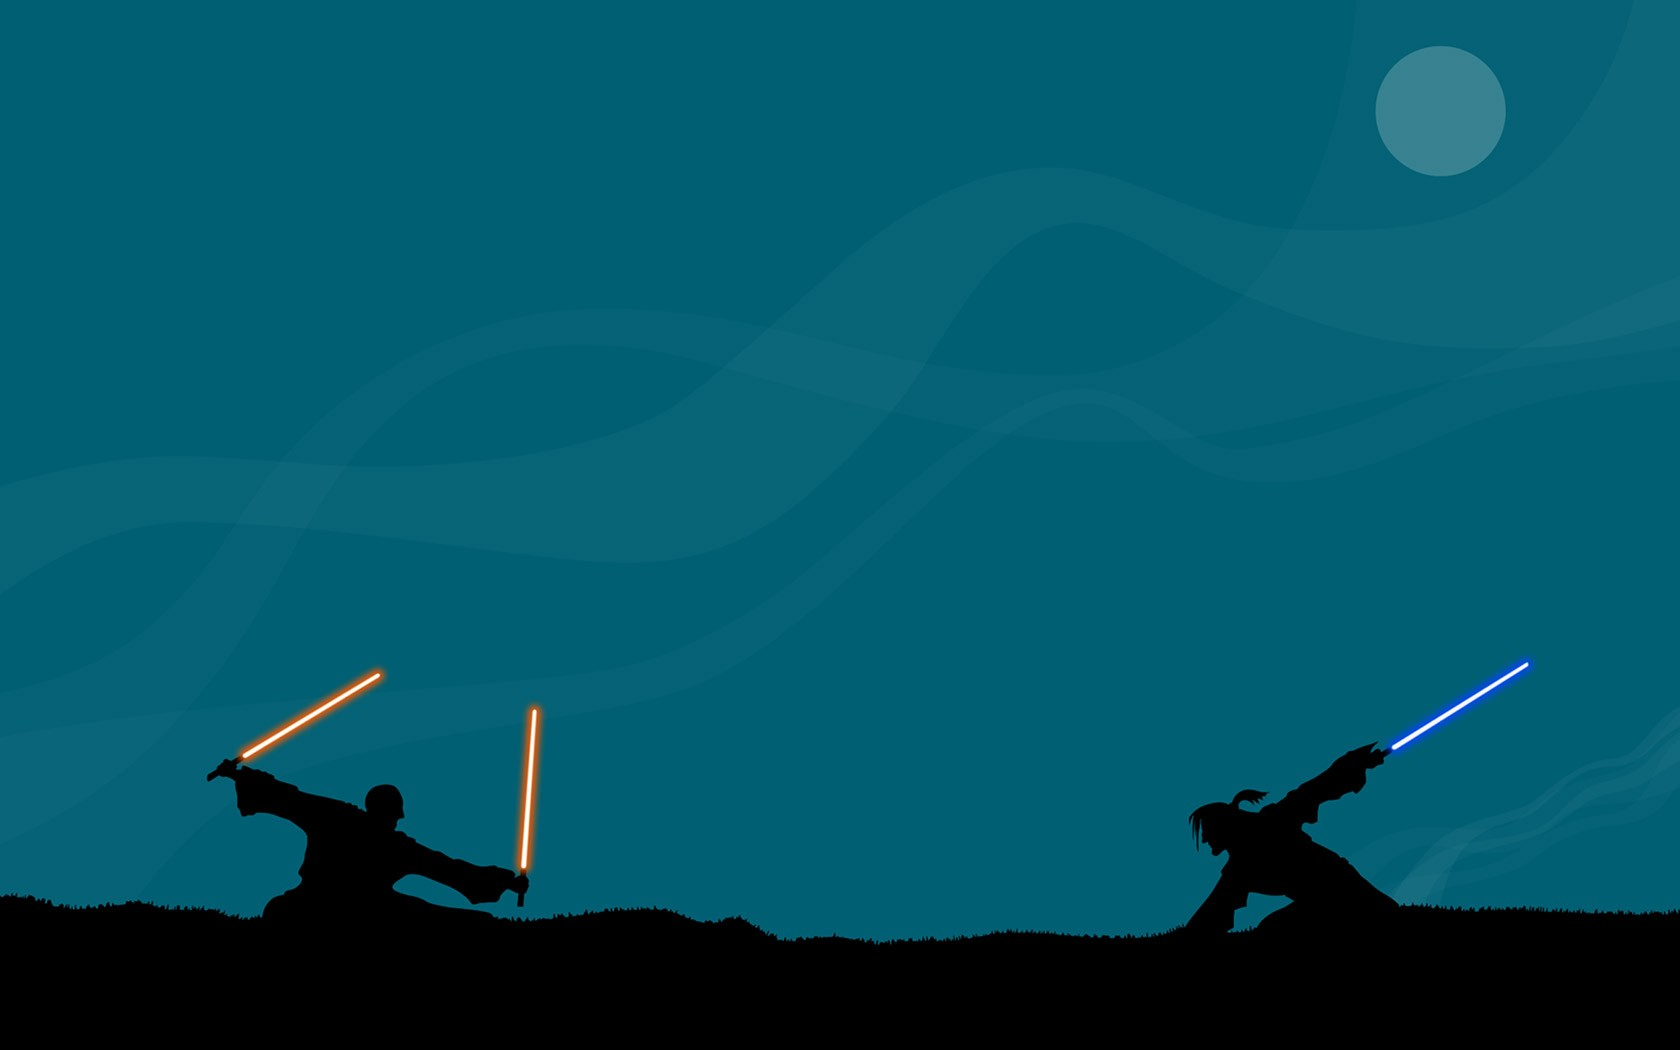 General 1680x1050 Star Wars lightsaber artwork